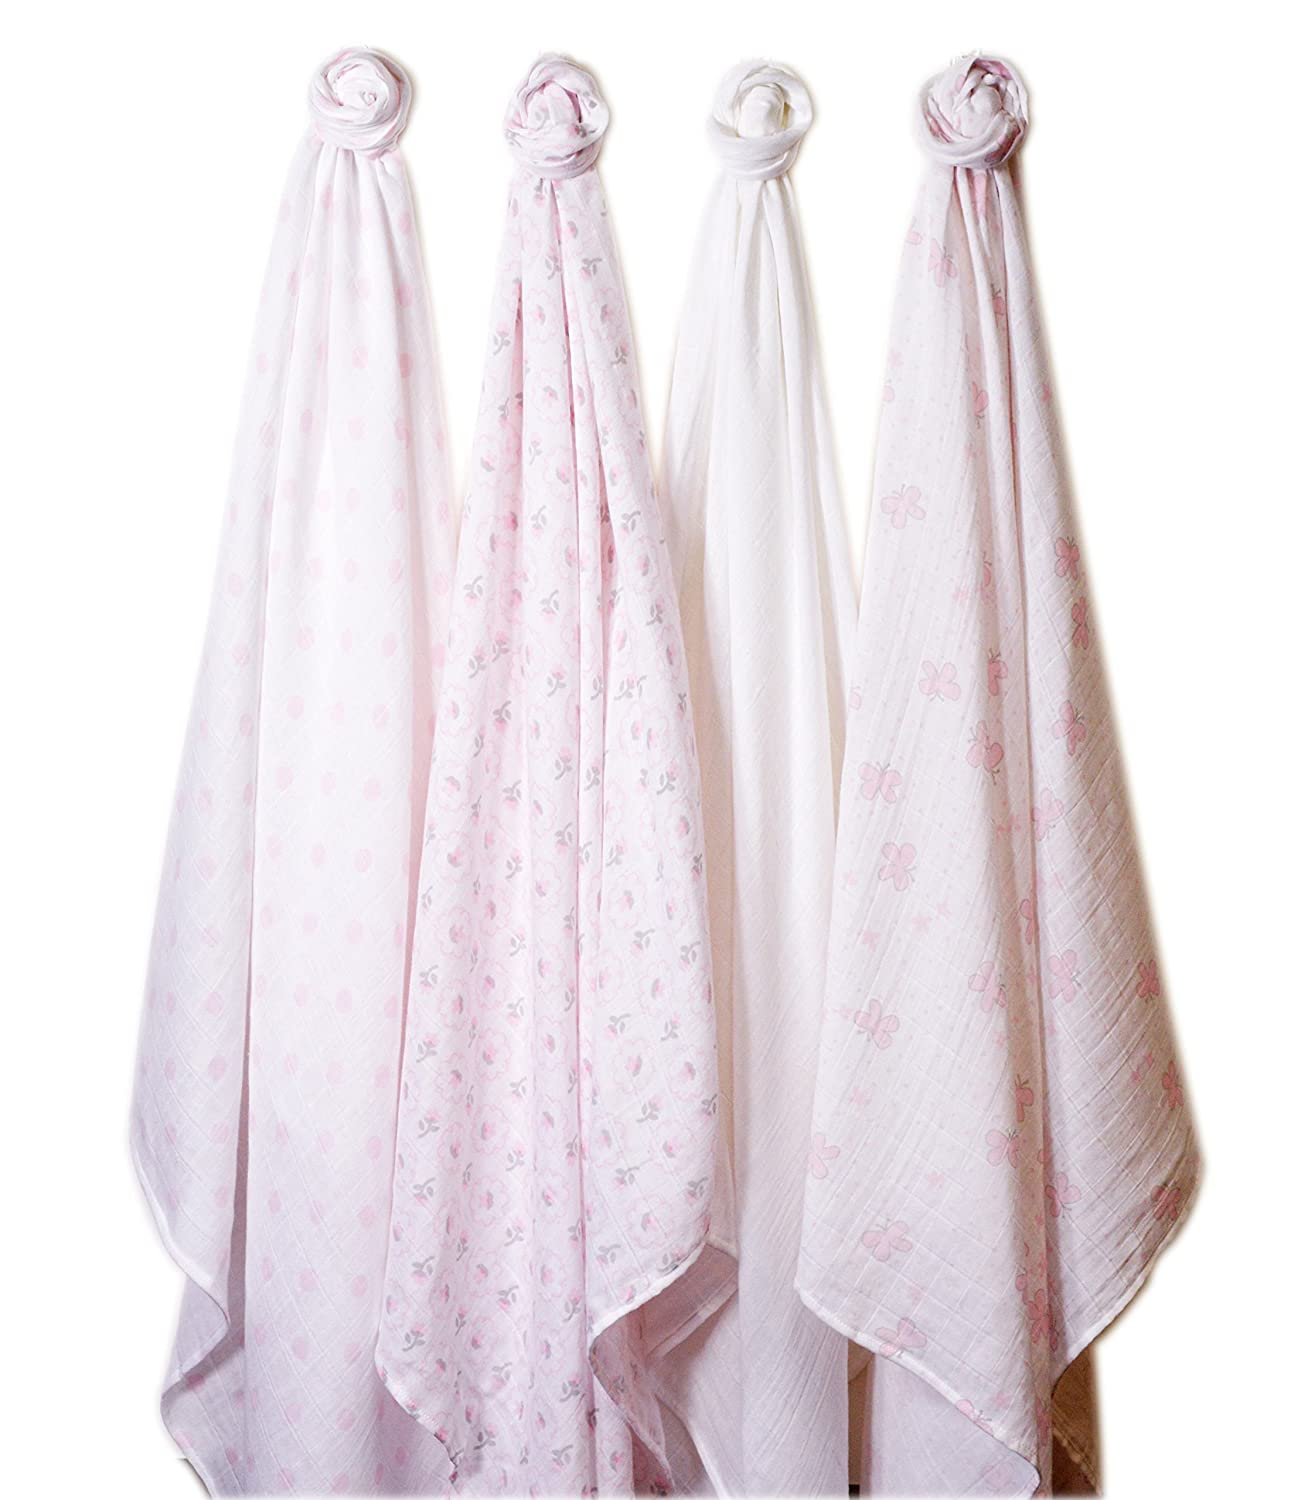 Butterfly Fun Set of 4 SwaddleDesigns X-Large Cotton Muslin Swaddle Blankets Pastel Pink